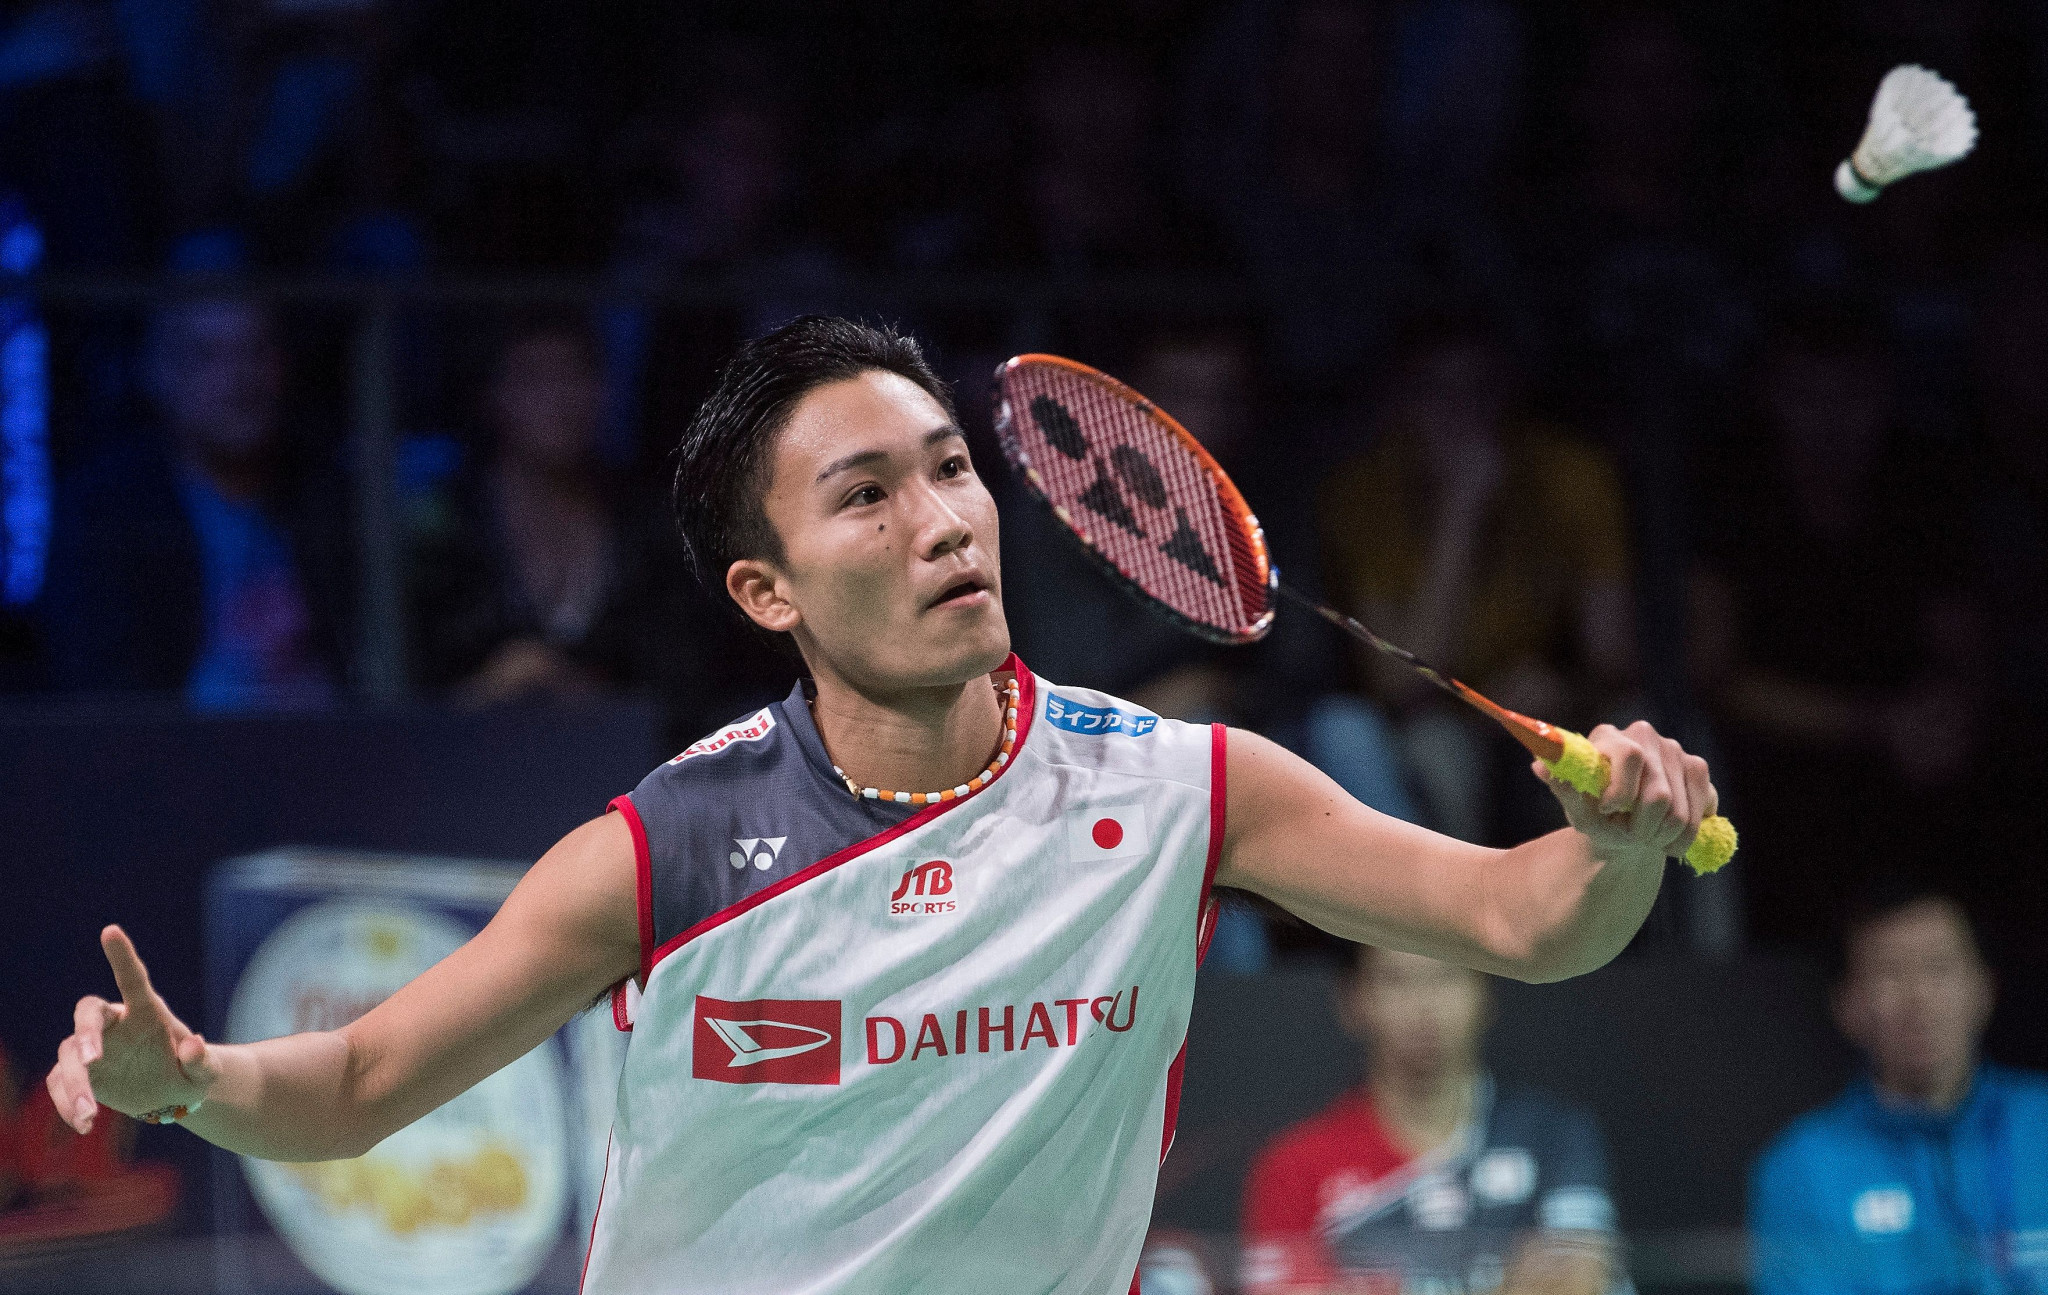 Japan's Kento Momota continued his dominant run of form as he dispatched compatriot Kazumasa Sakai ©Getty Images